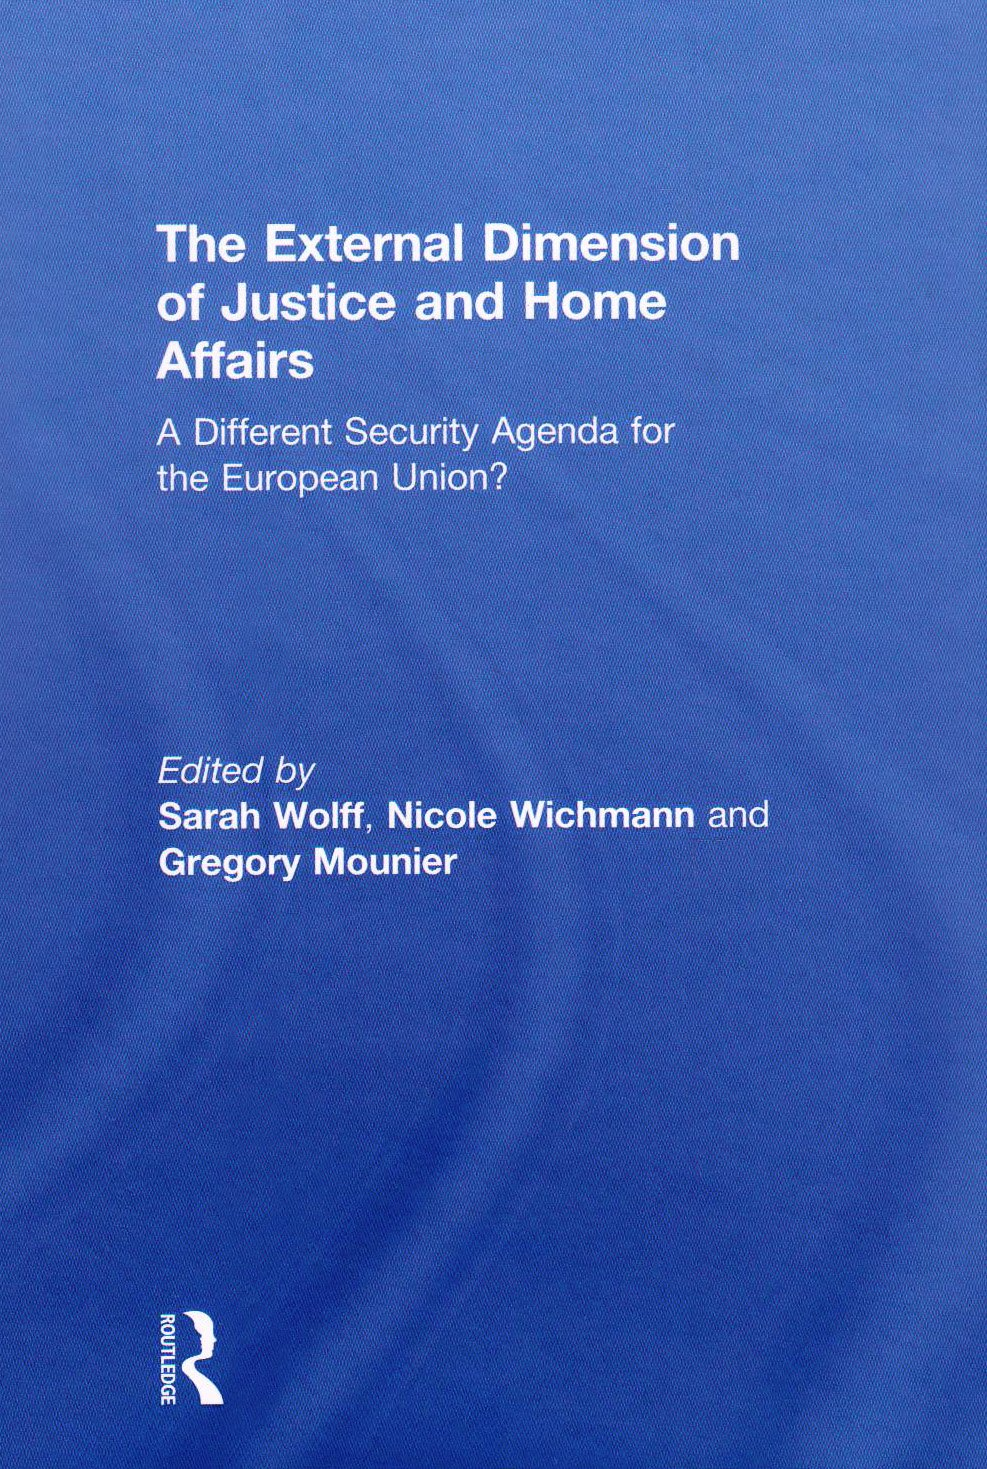 the dimensions of justice antigone Political philosophy as a genre was invented in this period by plato and reinvented by aristotle: it encompasses reflections on the origin of political institutions, the concepts used to interpret and organize political life such as justice and equality, the relation between the aims of ethics and the nature of politics, and the relative merits.